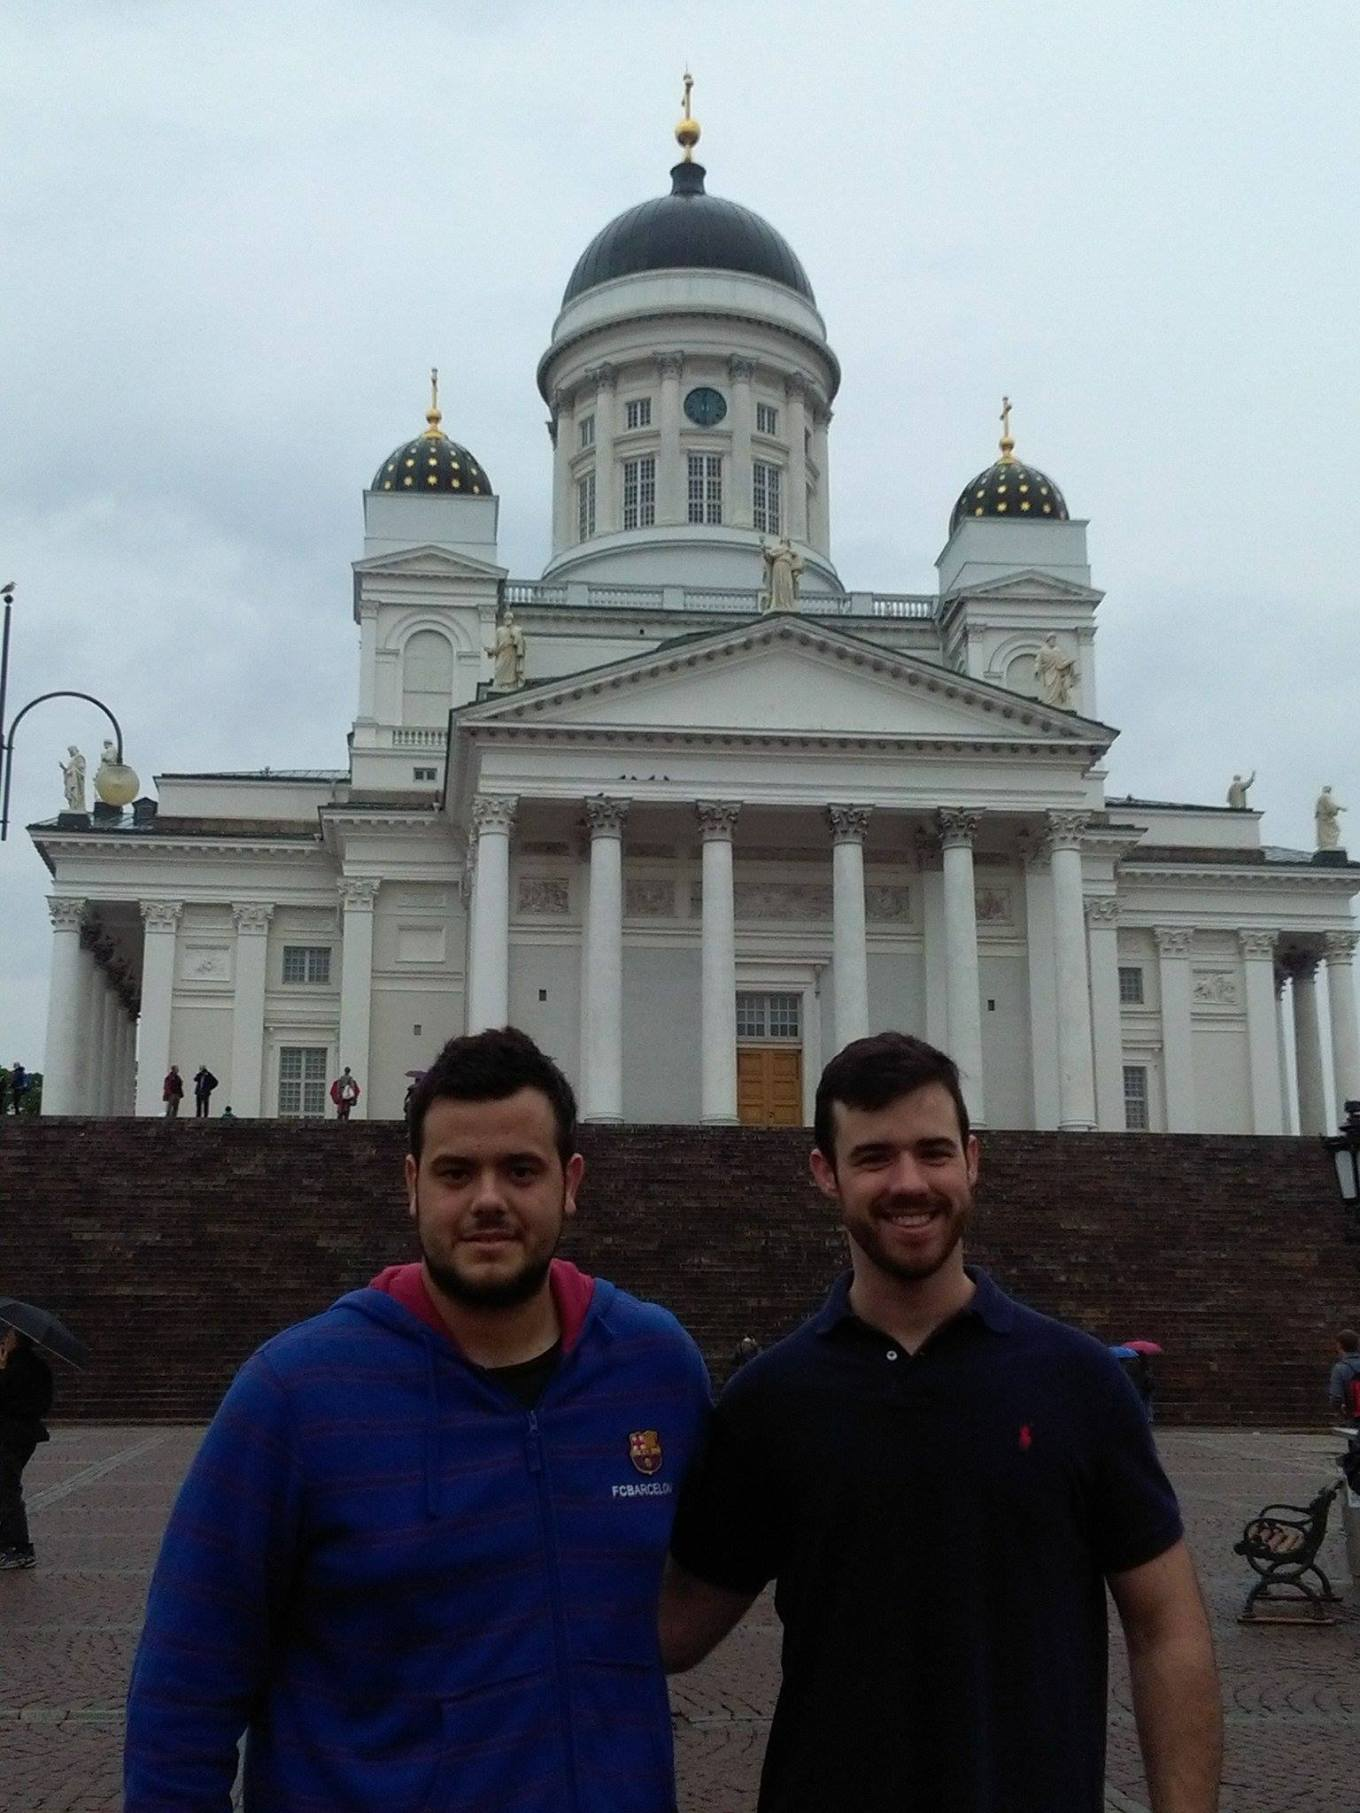 me and my mate Ramiro at Helsinki cathedral